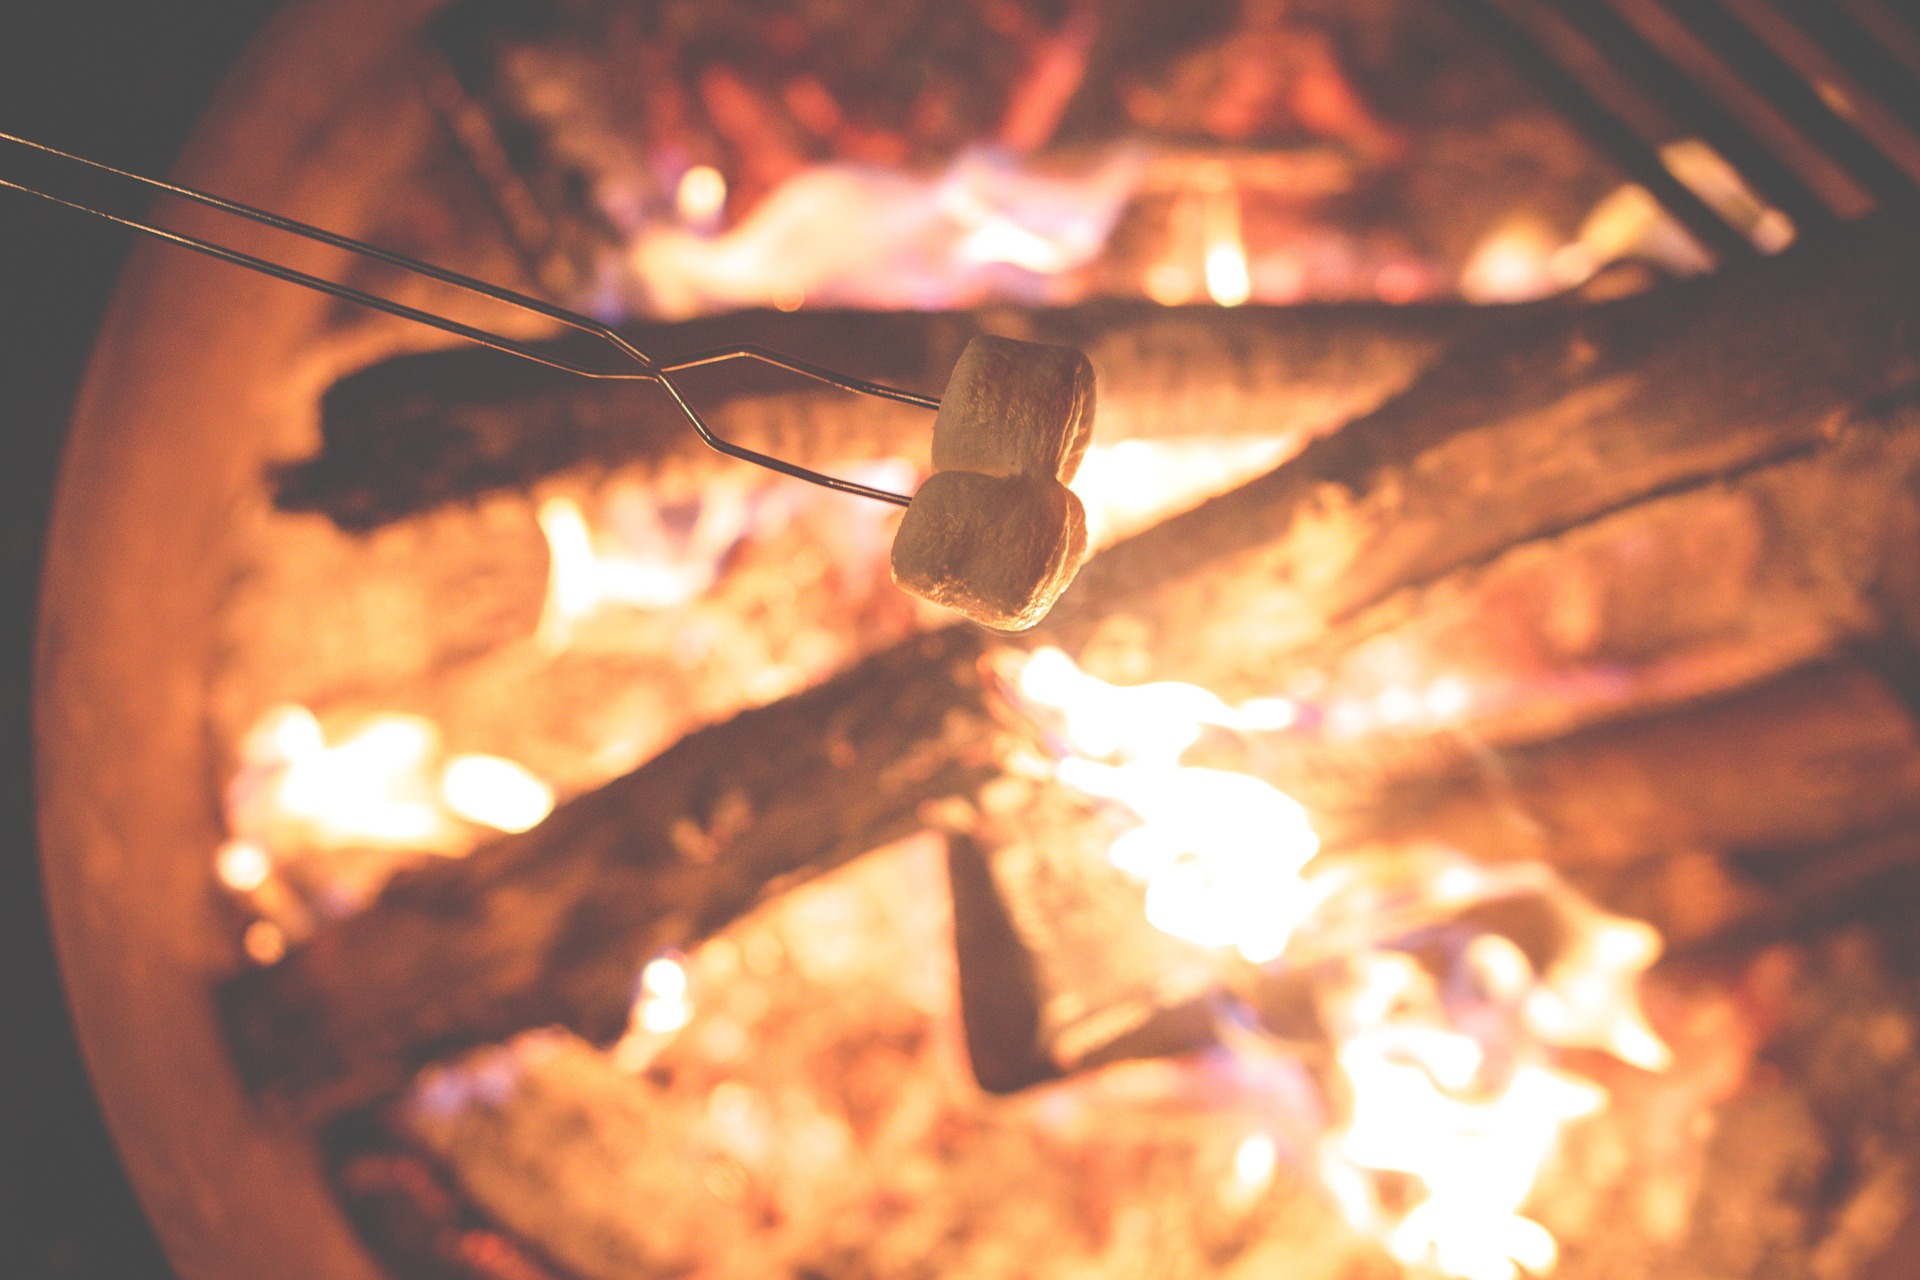 Use a dryer sheet to start a campfire and you'll be roasting marshmallows in no time!